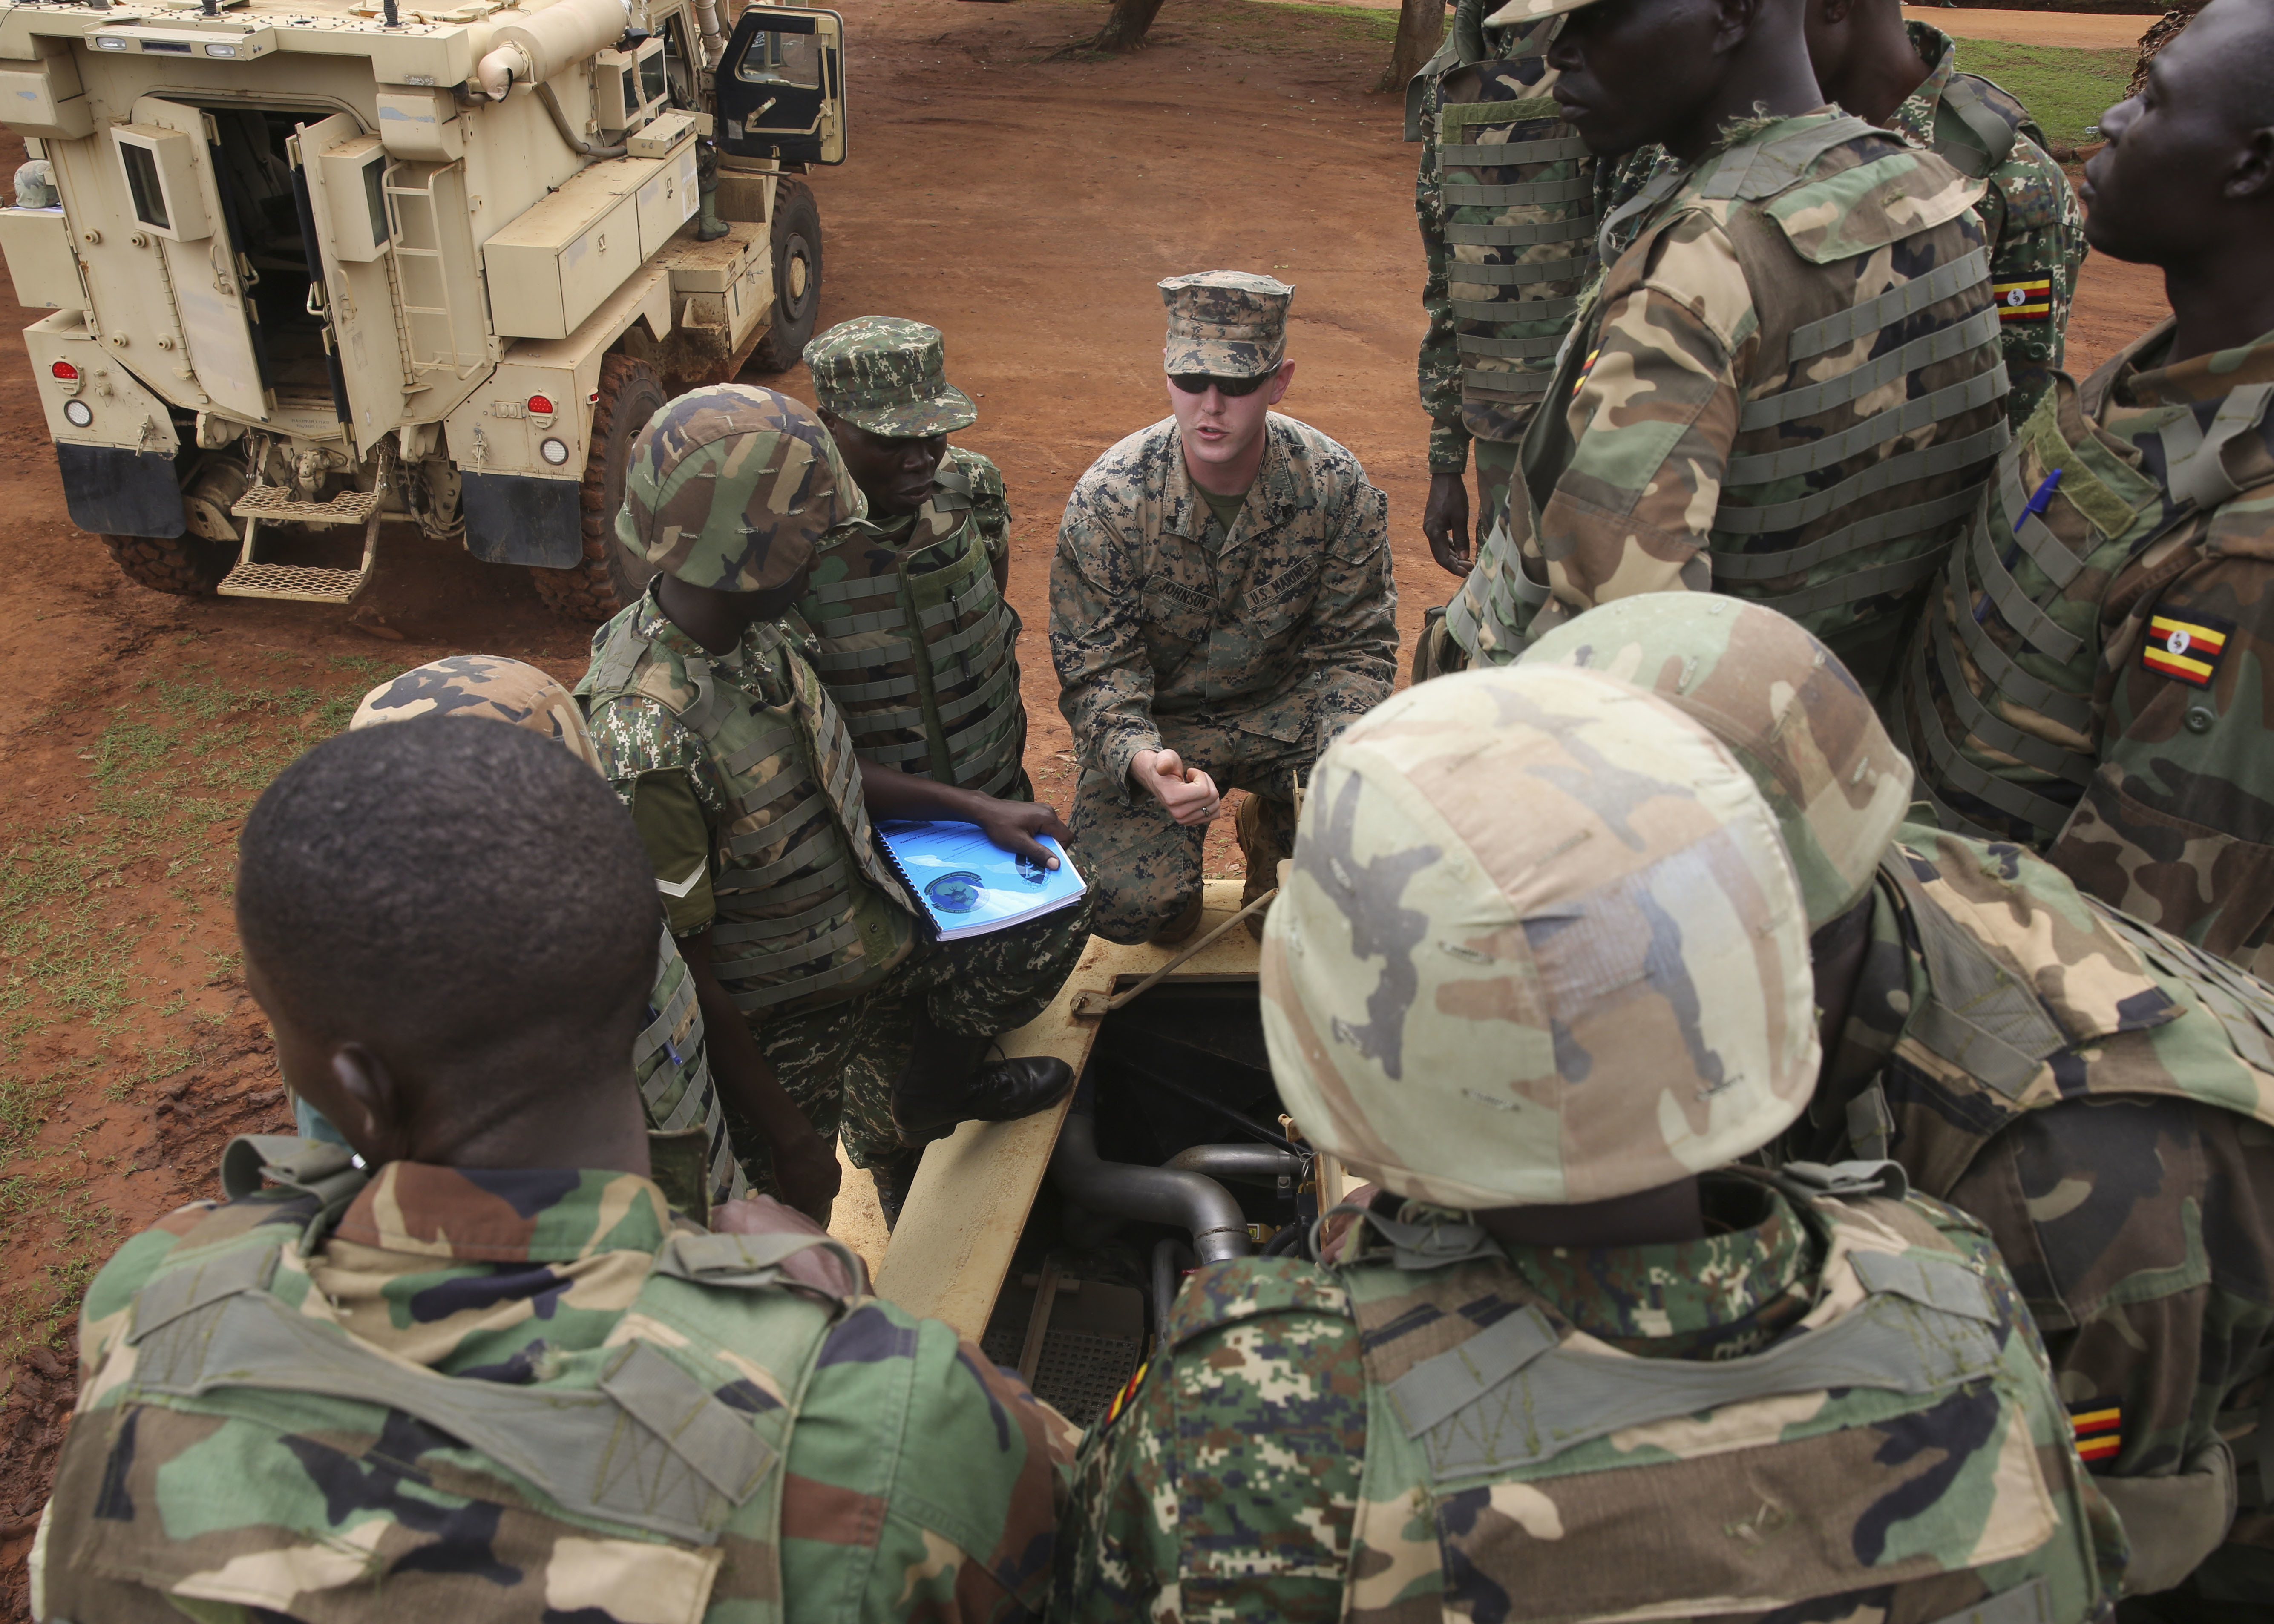 U.S. Marines with Special-Purpose Marine Air-Ground Task Force Crisis Response-Africa, train members of the Uganda People's Defense Force on Mine-Resistant, Ambushed-Protected Vehicles, or MRAPs, at Camp Singo, Uganda, Nov. 3, 2015. Marines and sailors with SPMAGTF-CR-AF are training with the UPDF to increase engineering and logistical capabilities while strengthening the bonds between the partner countries. (U.S. Marine Corps photo by Cpl. Olivia McDonald/Released)